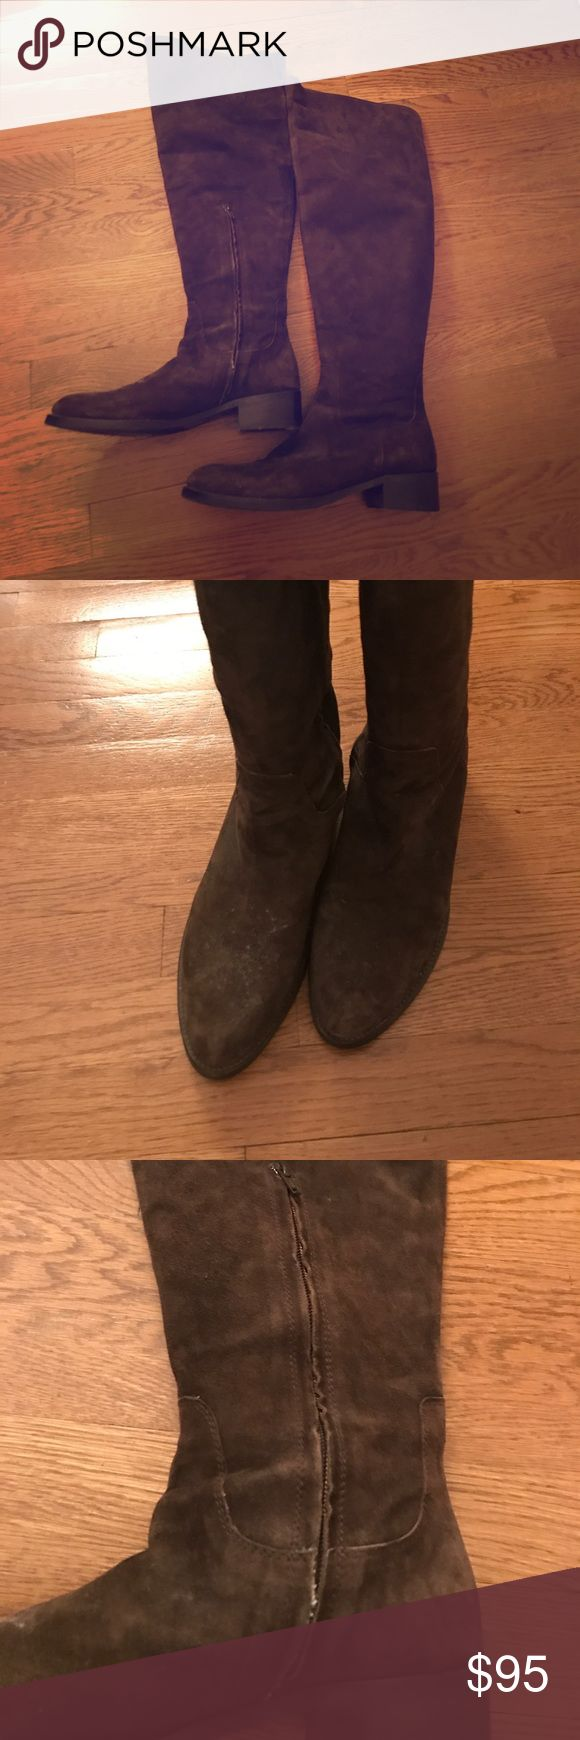 Brown Suede Over the Knee Boots These are amazing boots. They are BARNEYS NEW YORK and we're purchased at the famous store on Madison Ave in NYC. They have been worn a handful of times and are super comfy. Size 41/11. They are super comfortable and have a slit near the back of the leg so the leg can still be bent. There is a zipper to get the boots on and off with ease. I have no room for these in my closet so they need to go! Stuart Weitzman Shoes Over the Knee Boots